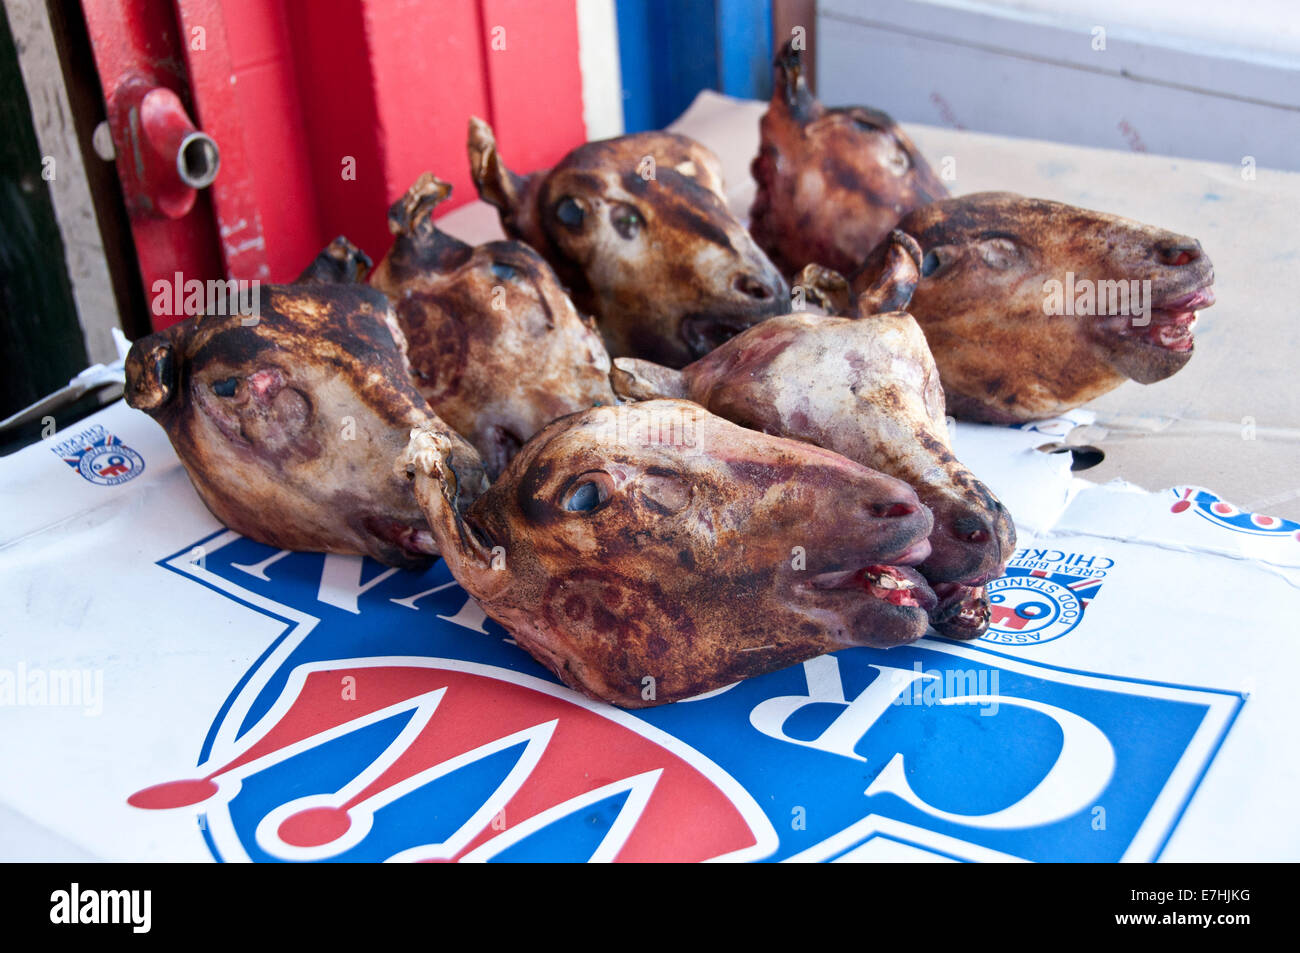 Unskinned Sheep / goat heads for sale in Butchers in East